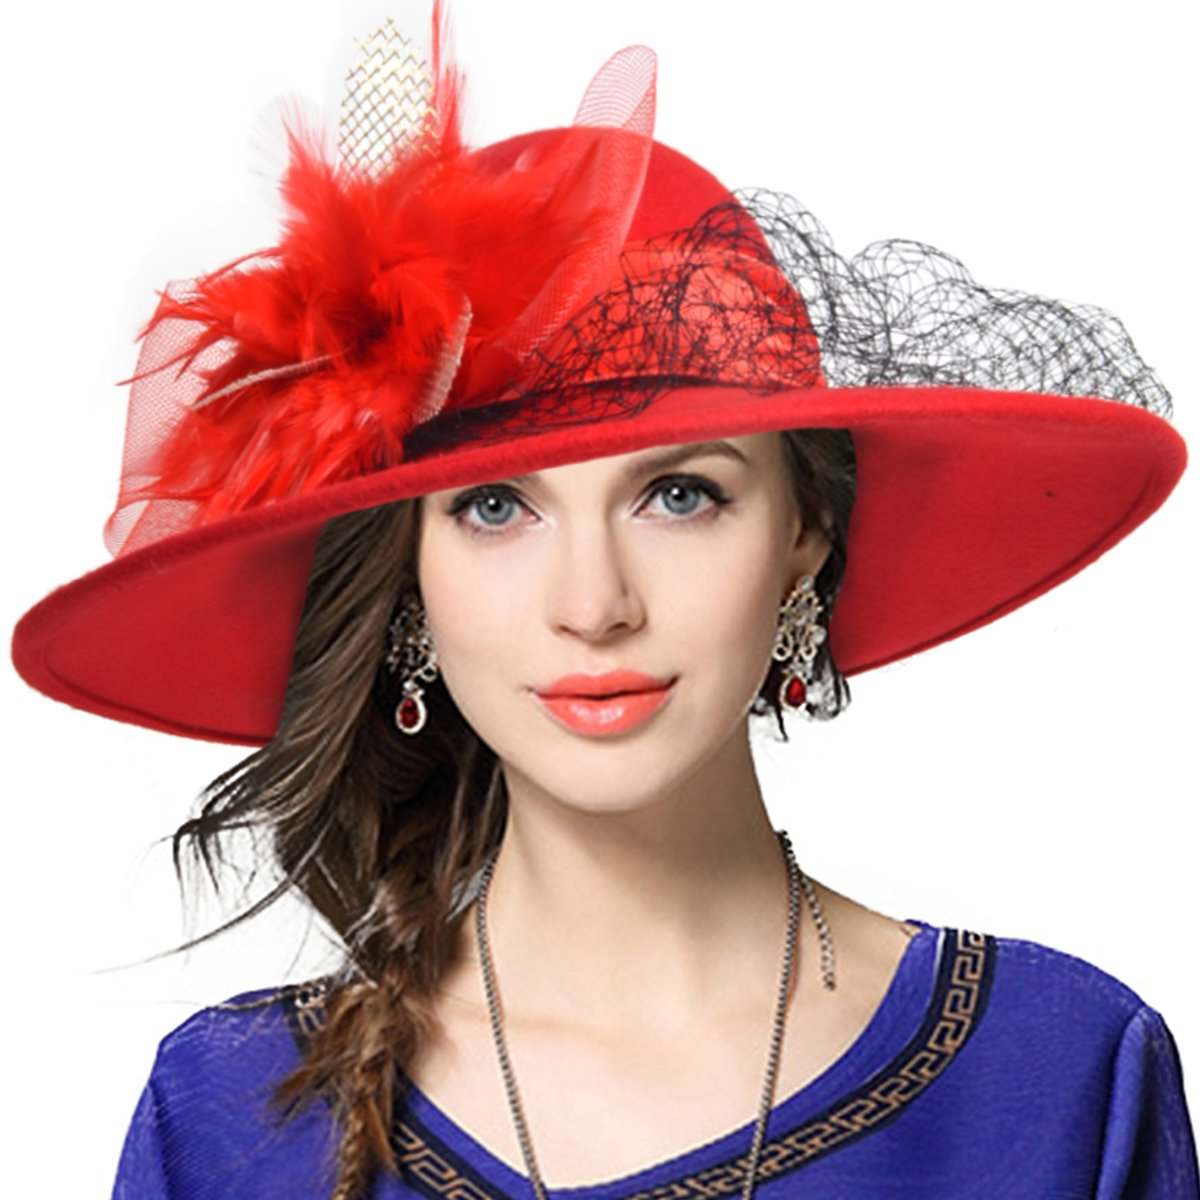 a5d54bd68a VECRY Women's Fascinator Wool Felt Hat Cocktail Party Wedding Fedora Hats